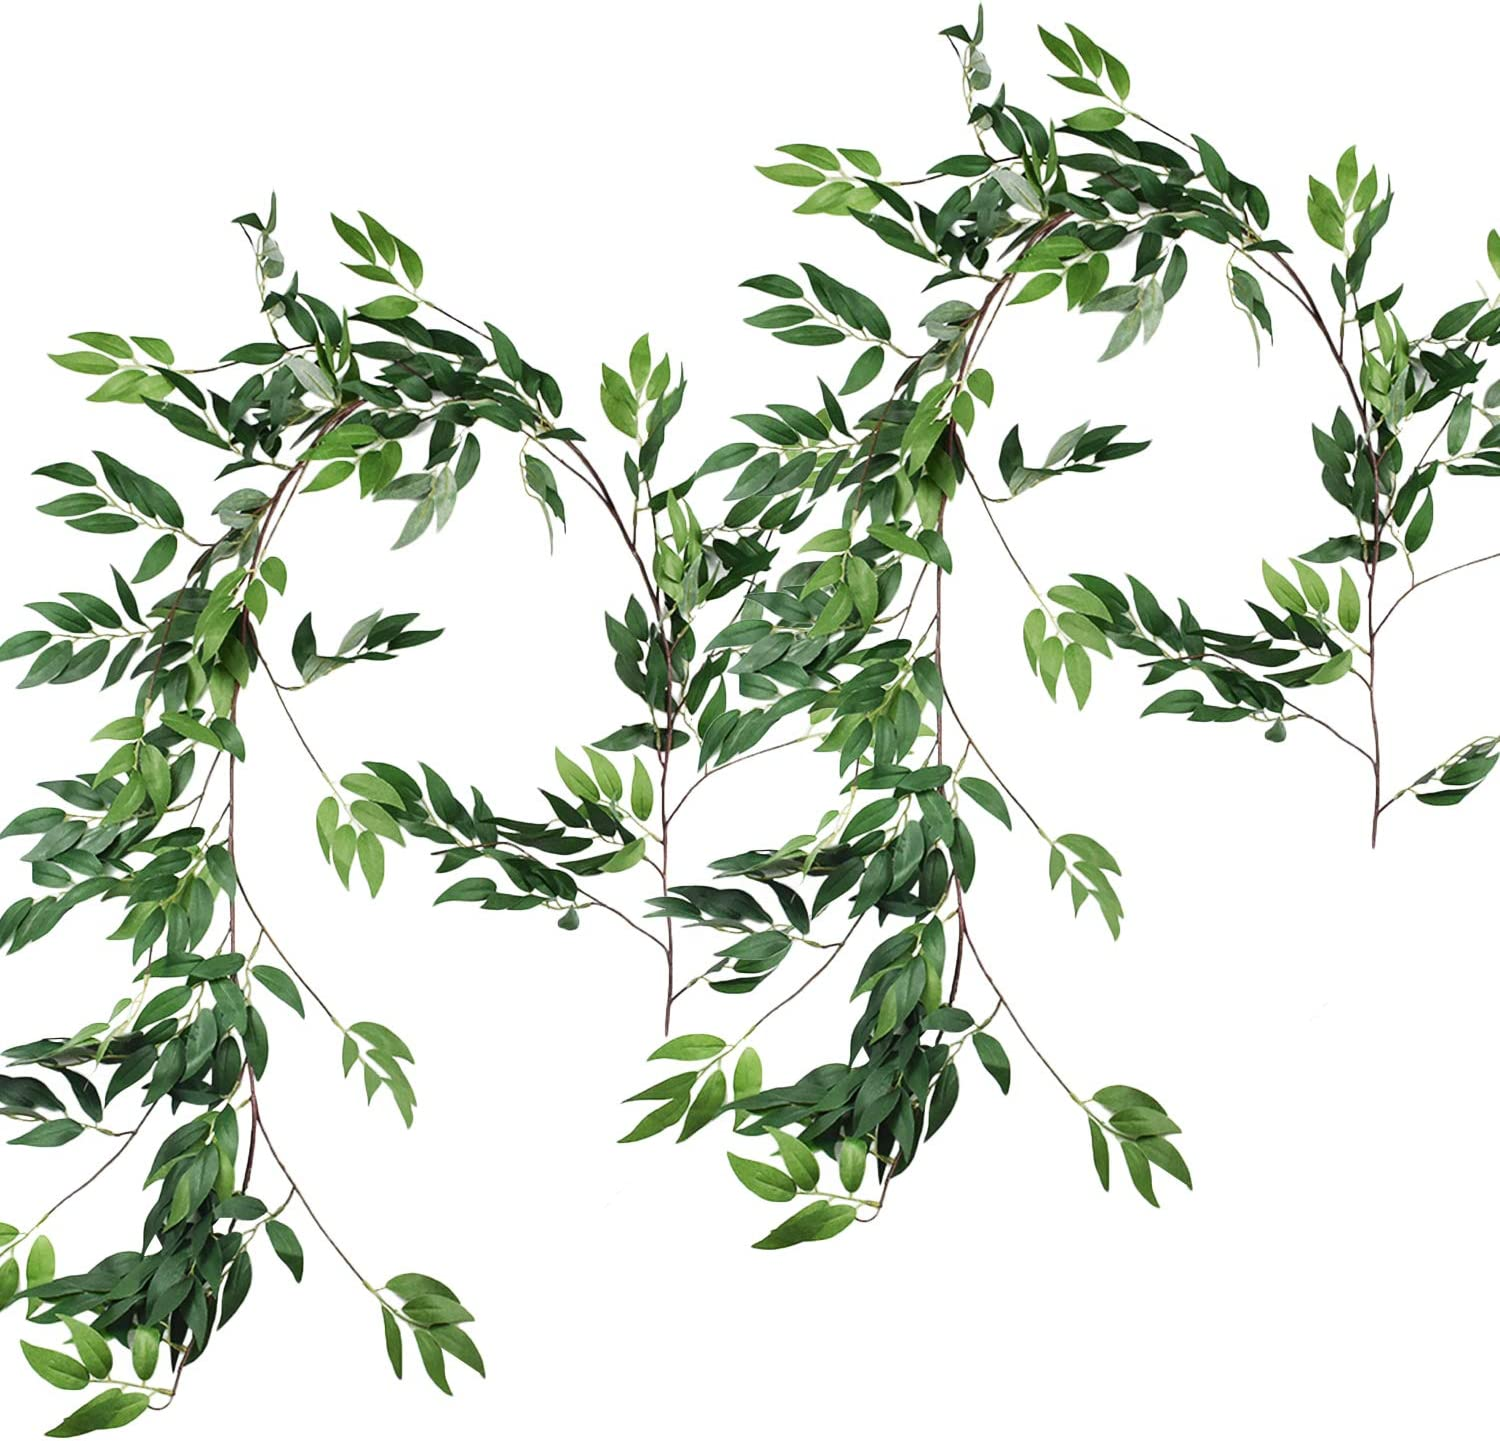 2PCS Artificial Greenery Garland Faux Silk Hanging Willow Leaves Vines Wreath